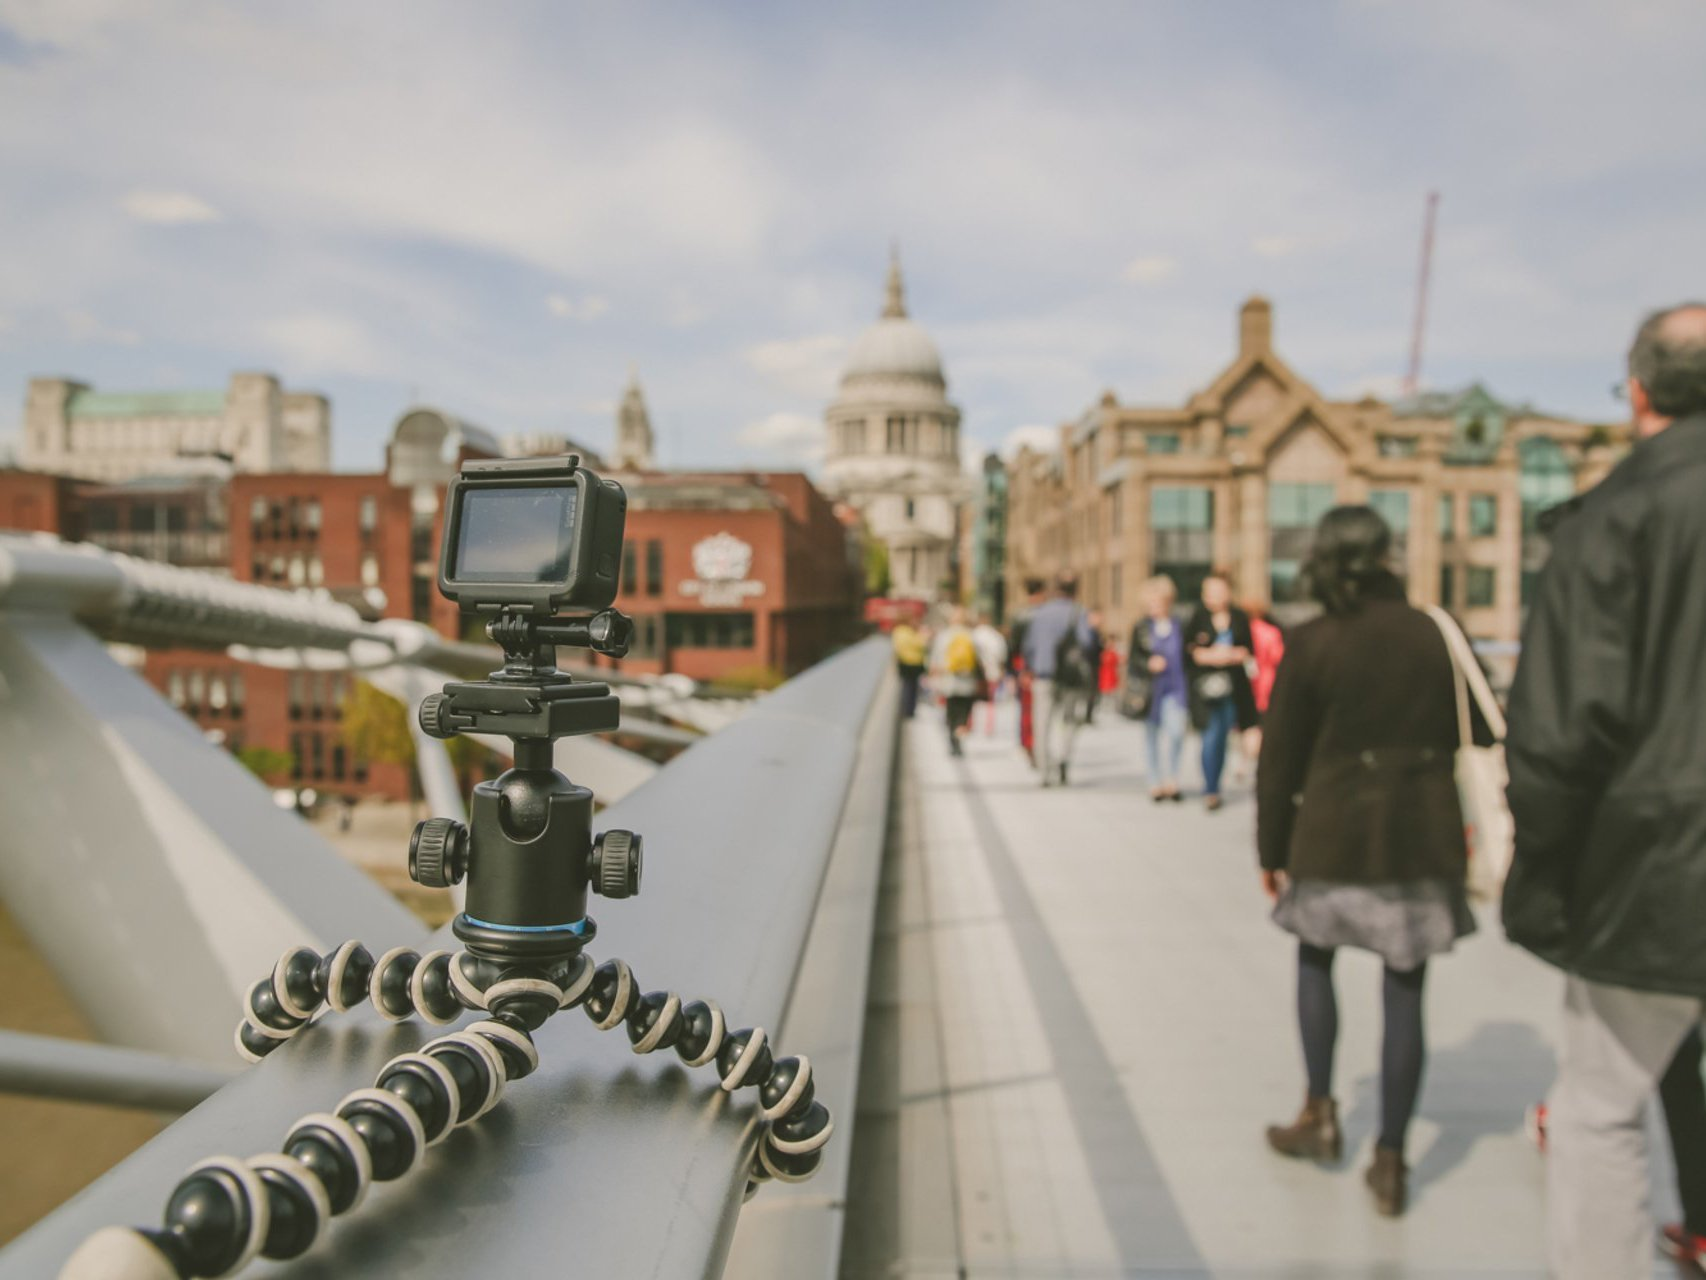 Camera located on london bridge